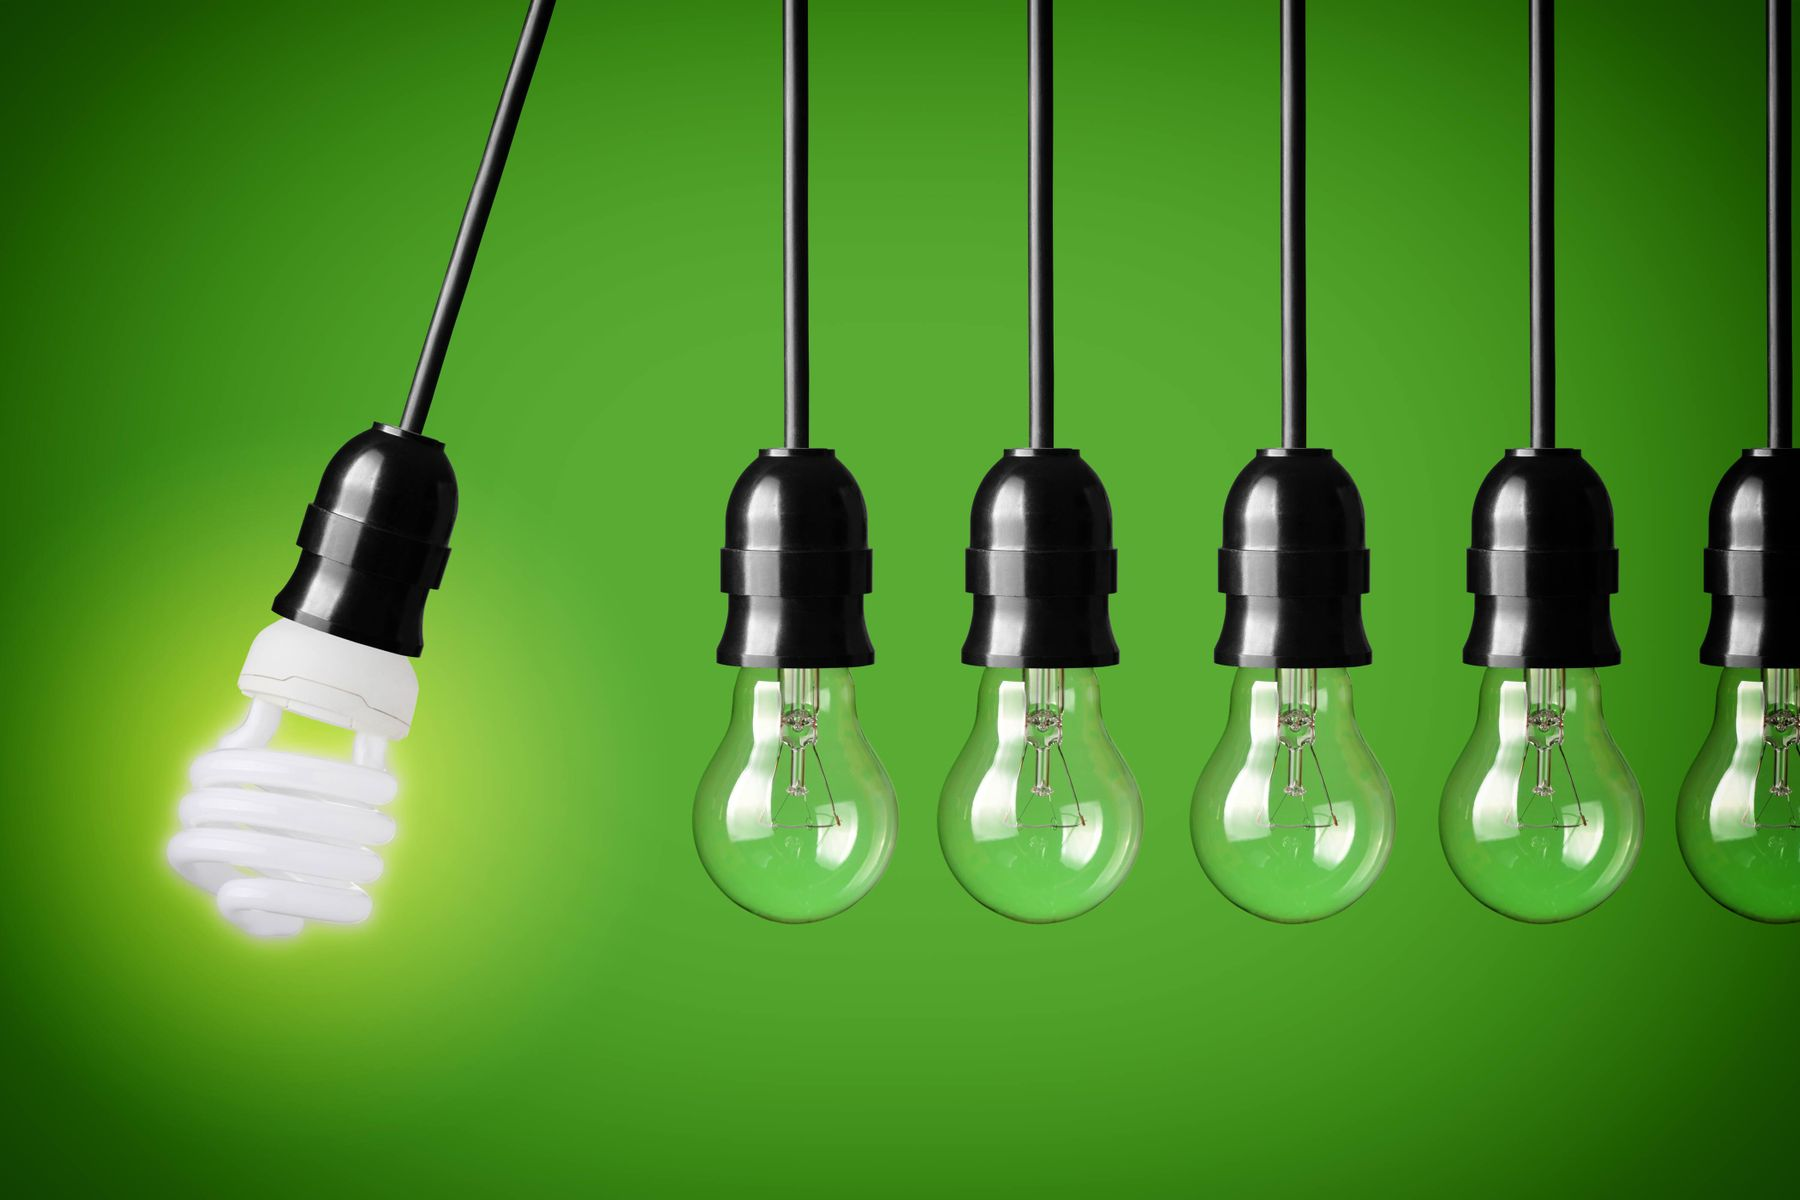 light bulb types on a green background